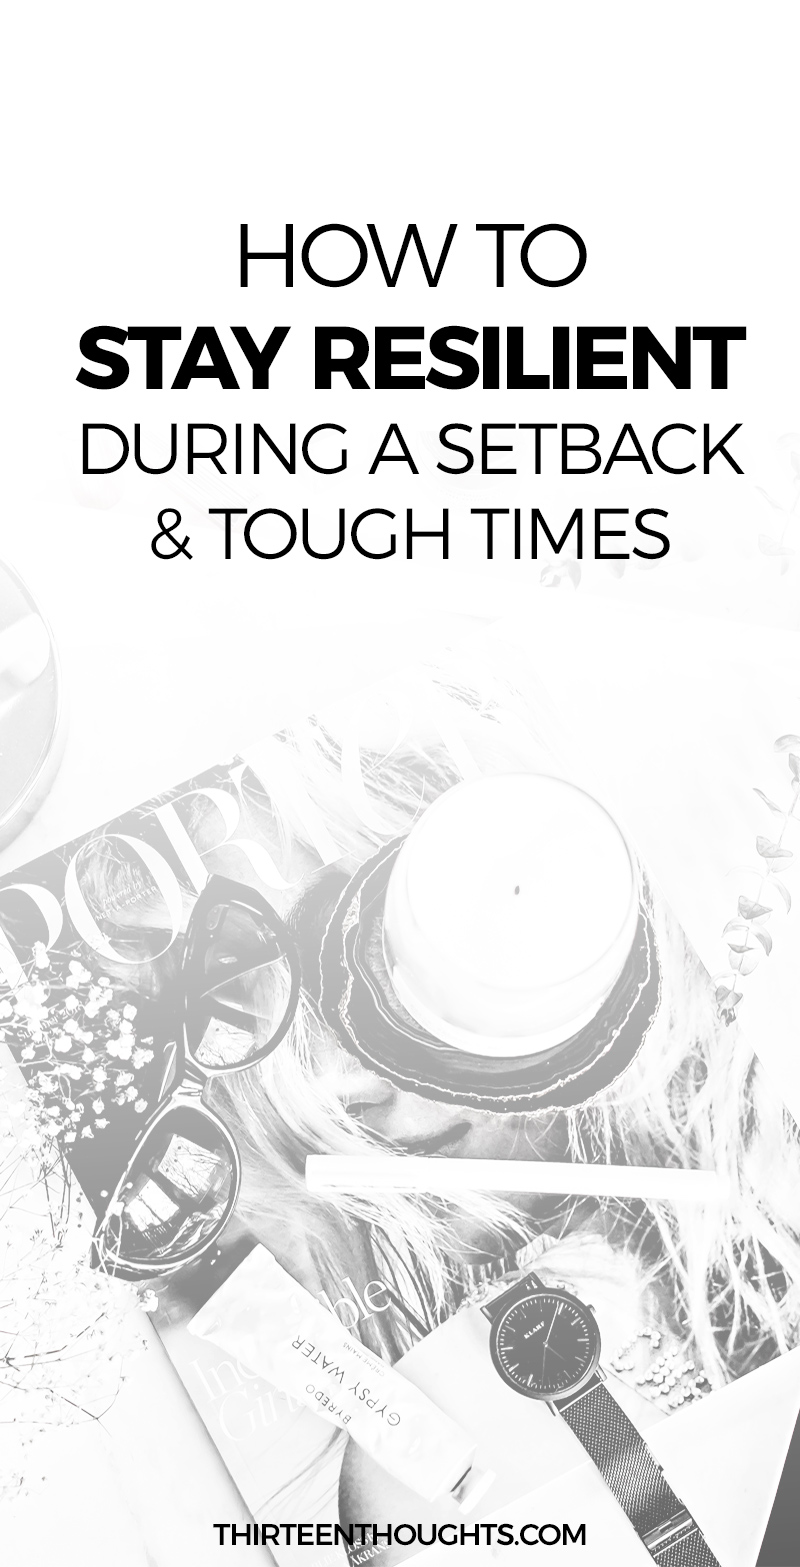 How to Stay Resilient During Tough Times #happiness #setback #mindfulness #life #lifestyleblog #beresilient #resilience